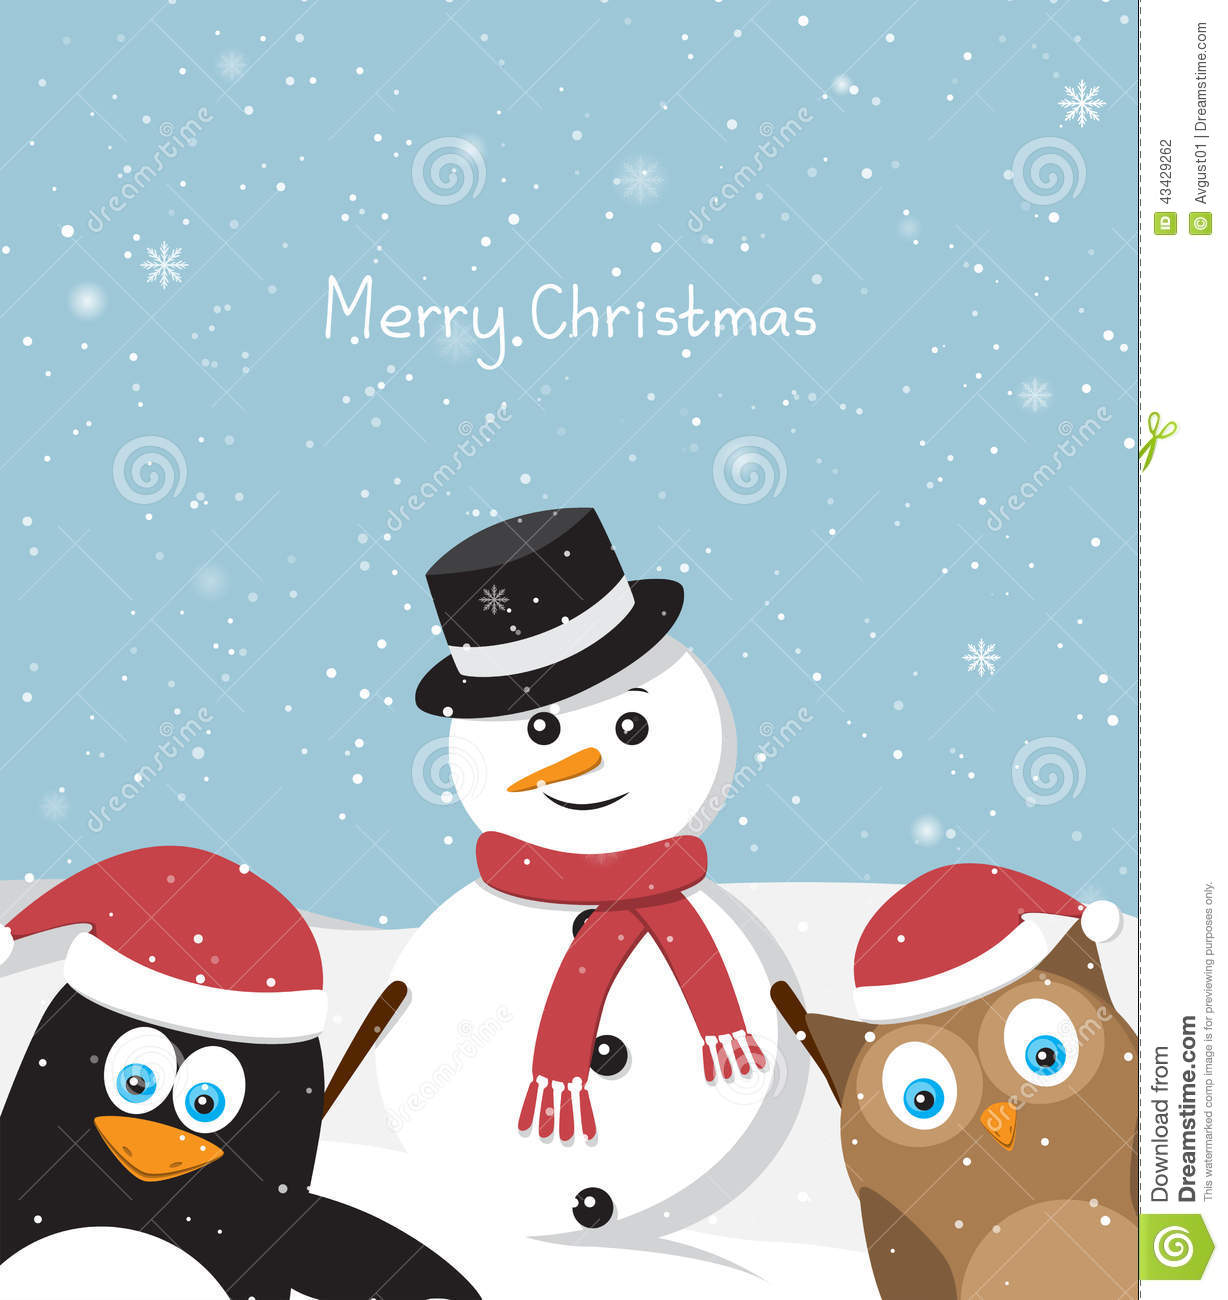 Snowman With Penguin And Owl Stock Vector - Illustration of ...